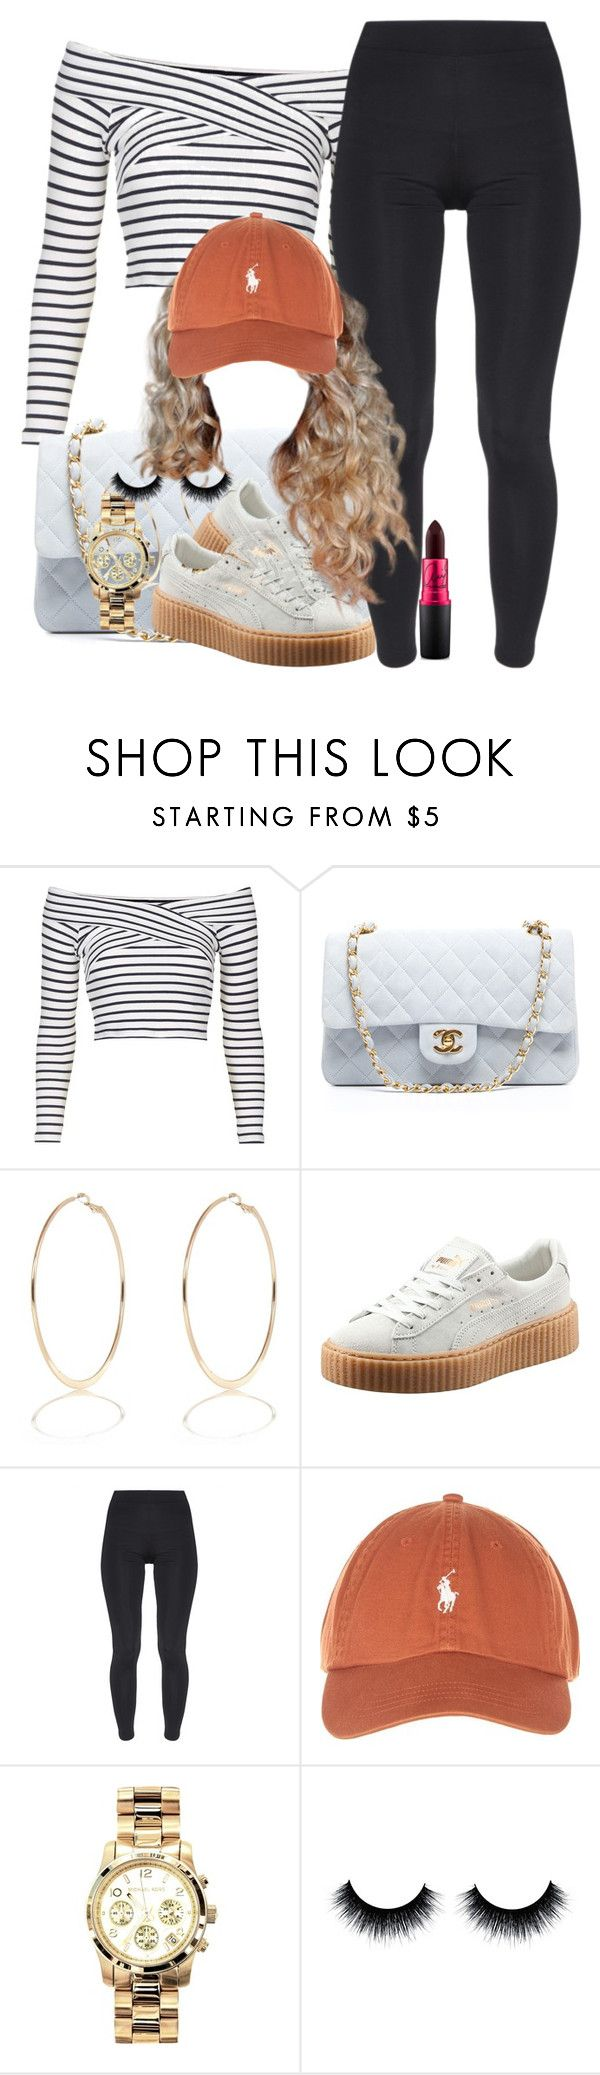 """""""in love with puma"""" by tyrionnak ❤ liked on Polyvore featuring Topshop, Chanel, River Island, Puma, TWISTY PARALLEL UNIVERSE, Michael Kors and MAC Cosmetics"""